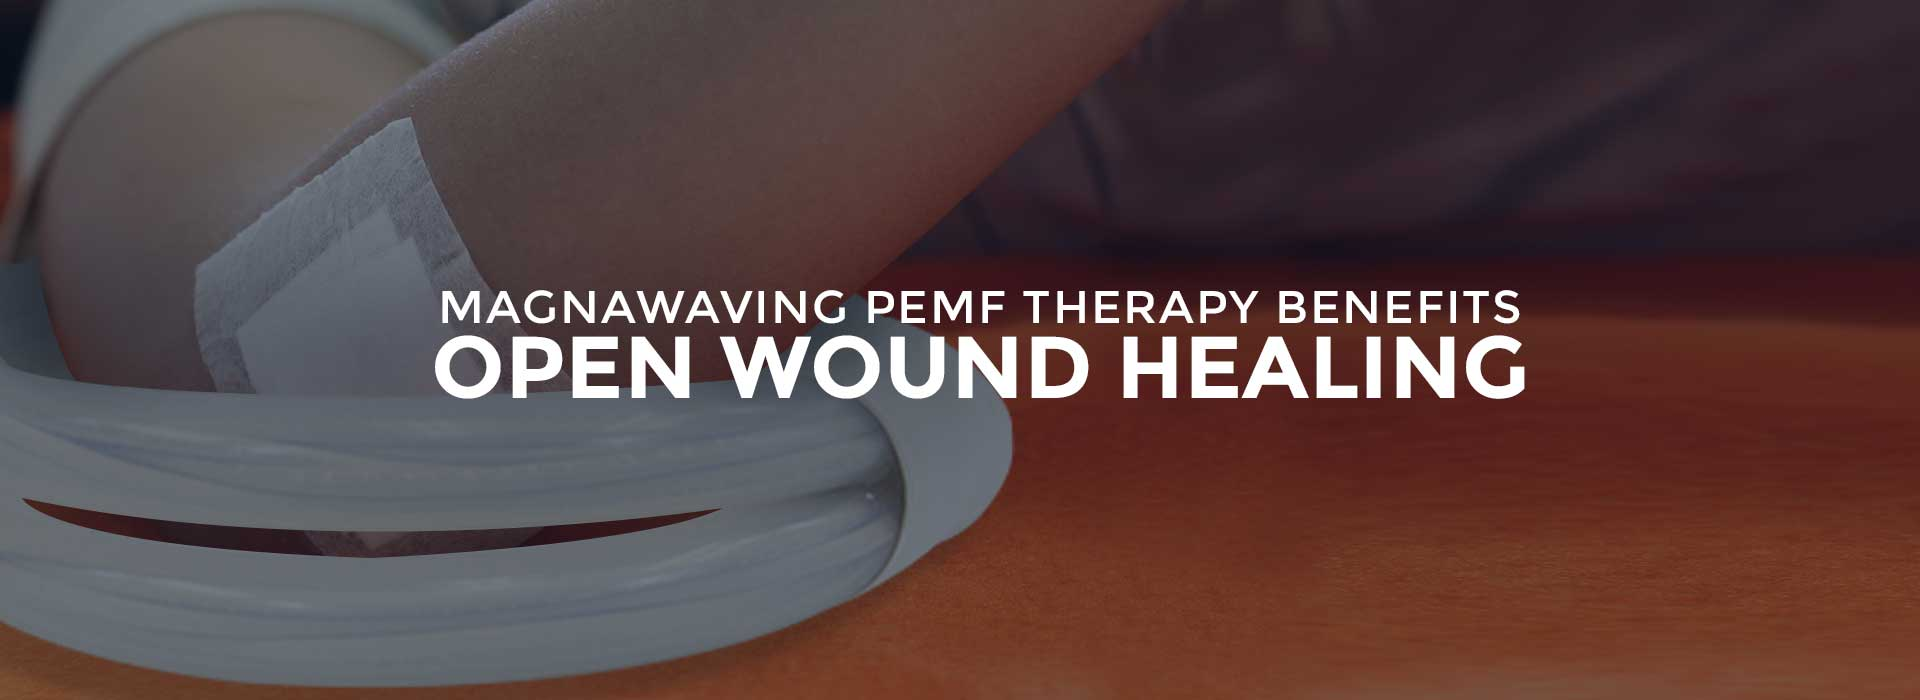 Magnawaving PEMF Therapy Benefits Open Wound Healing